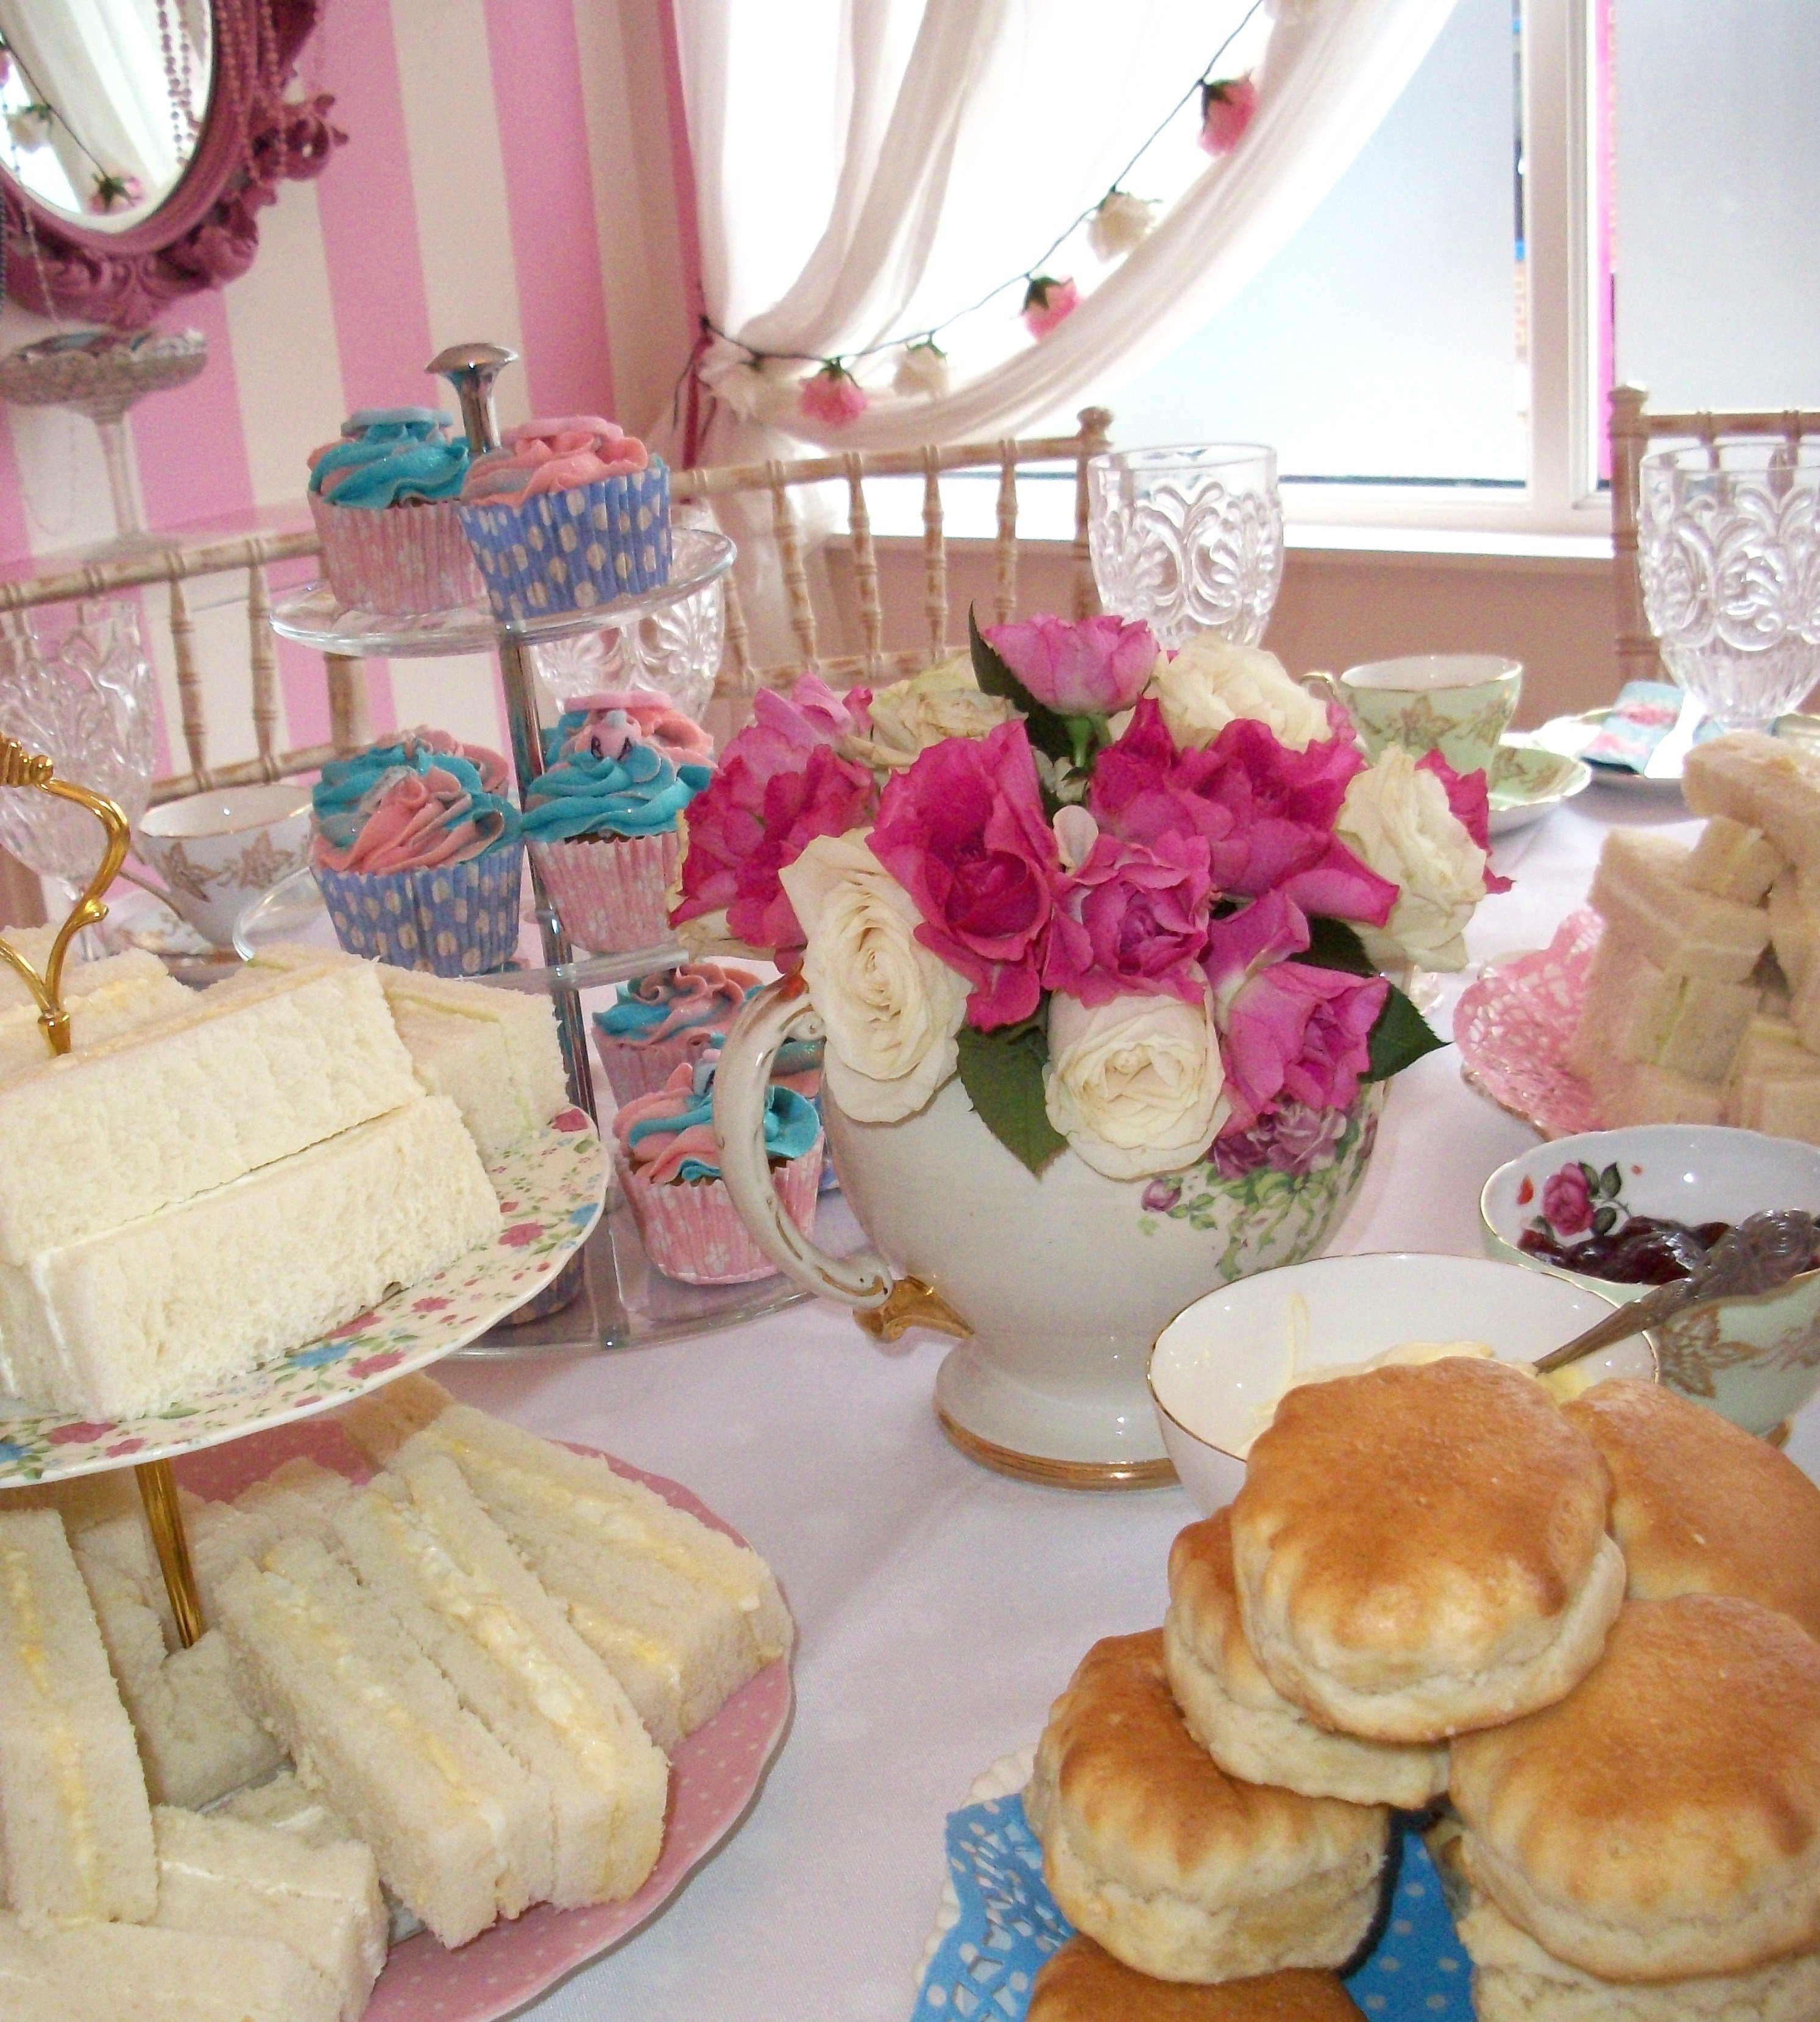 10 Wonderful Baby Shower Tea Party Ideas photo animal tea party baby shower image 1 2020